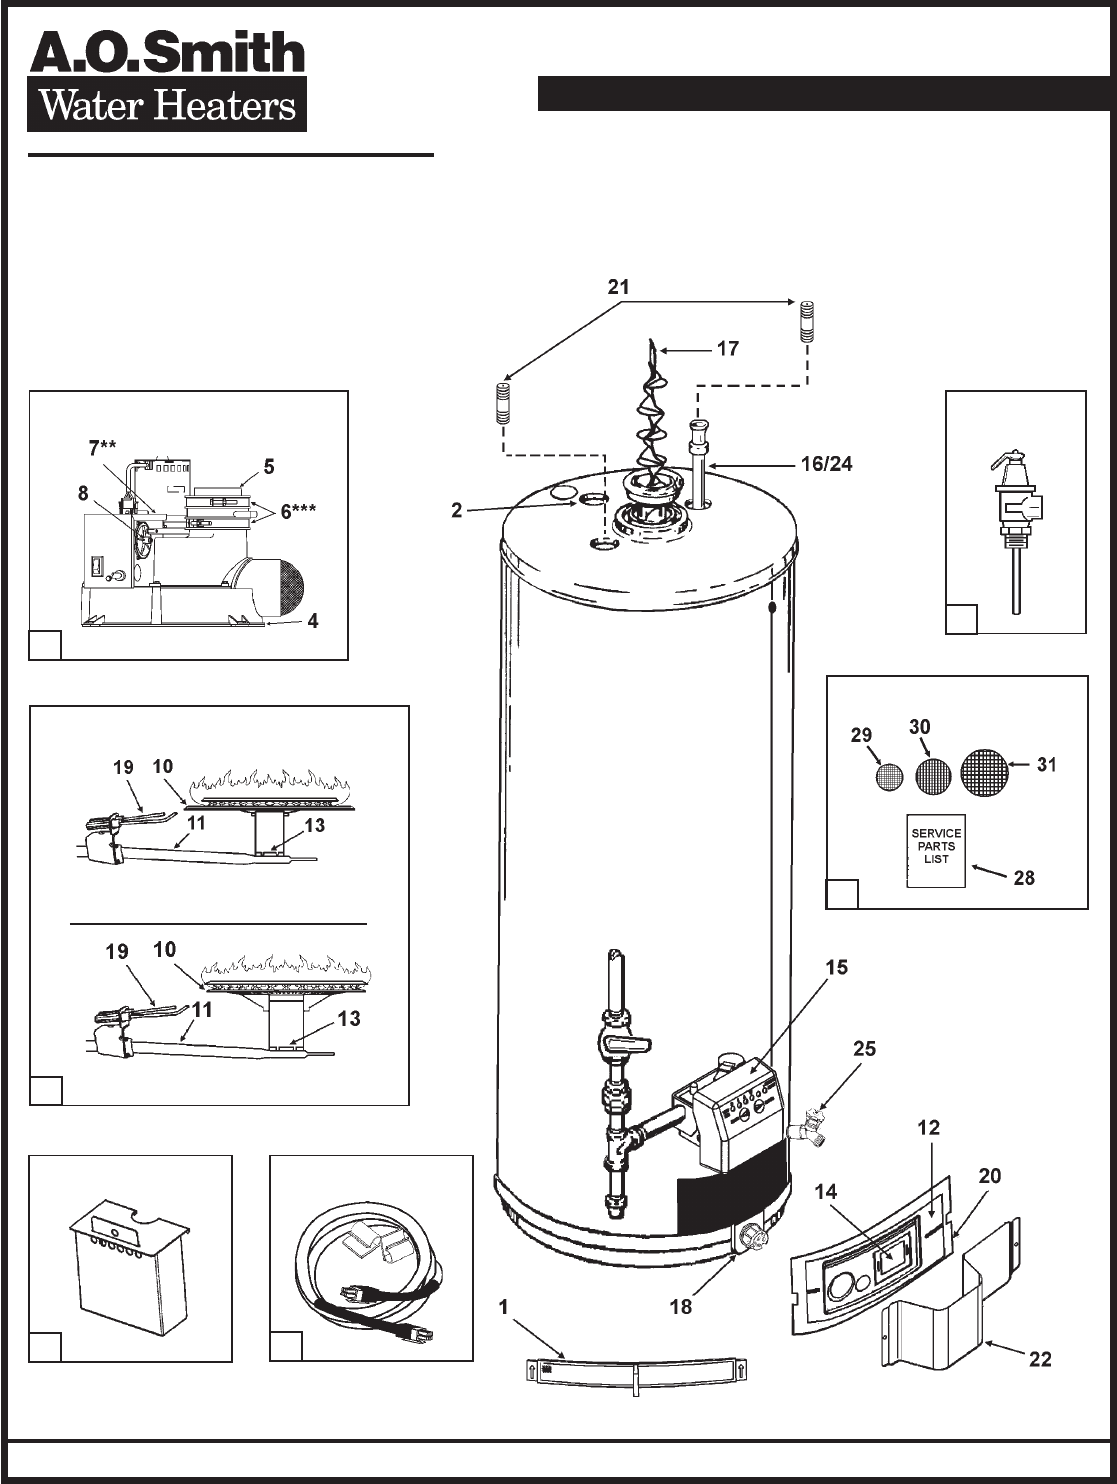 ao smith hot water heater wiring diagram ao image a o smith water heater gpvt 50 user guide manualsonline com on ao smith hot water heater